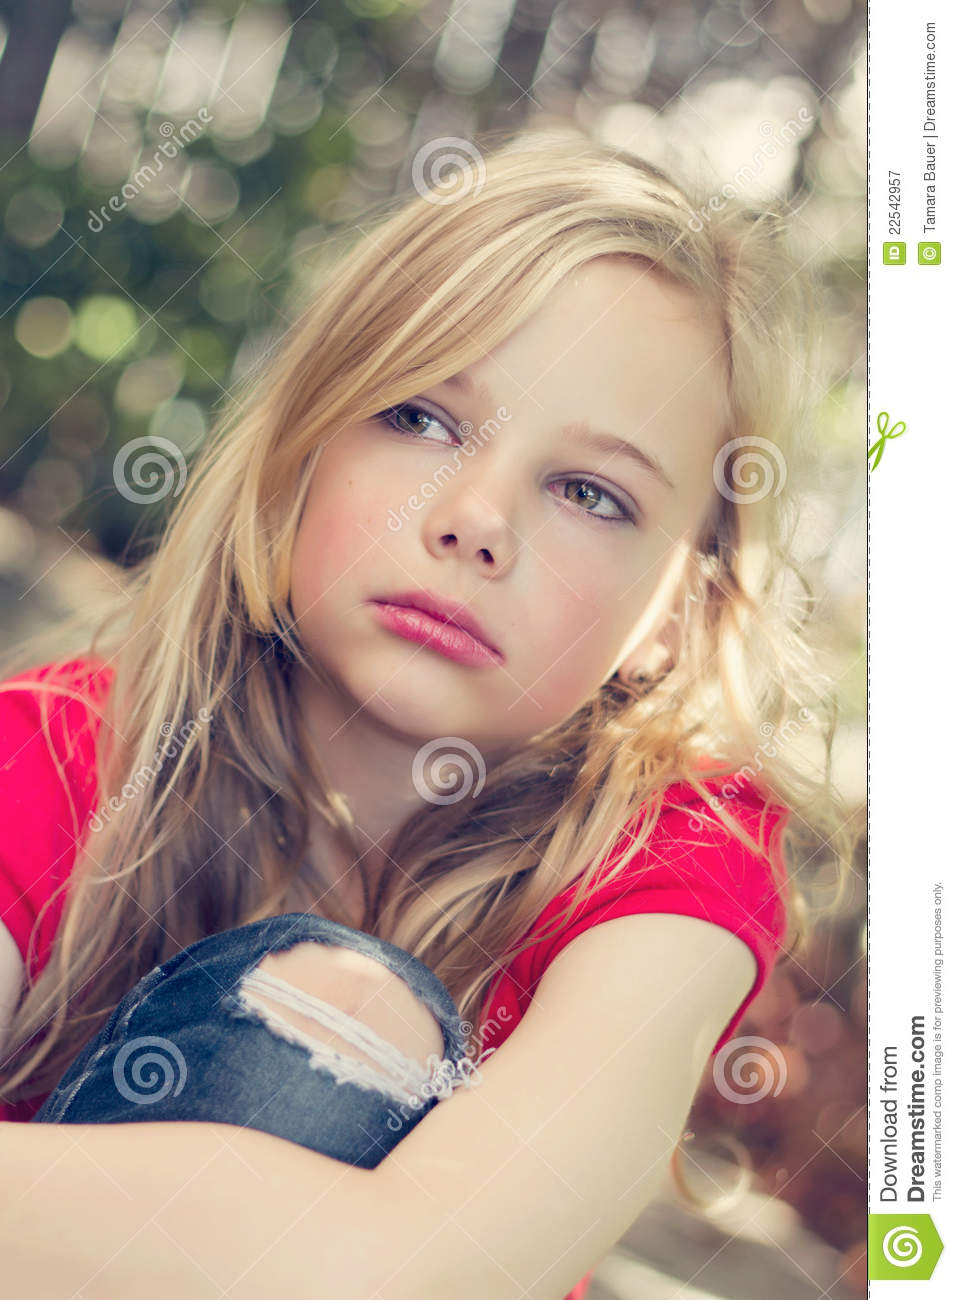 woman and young girl Download young girl stock photos affordable and search from millions of royalty free images, photos and vectors.